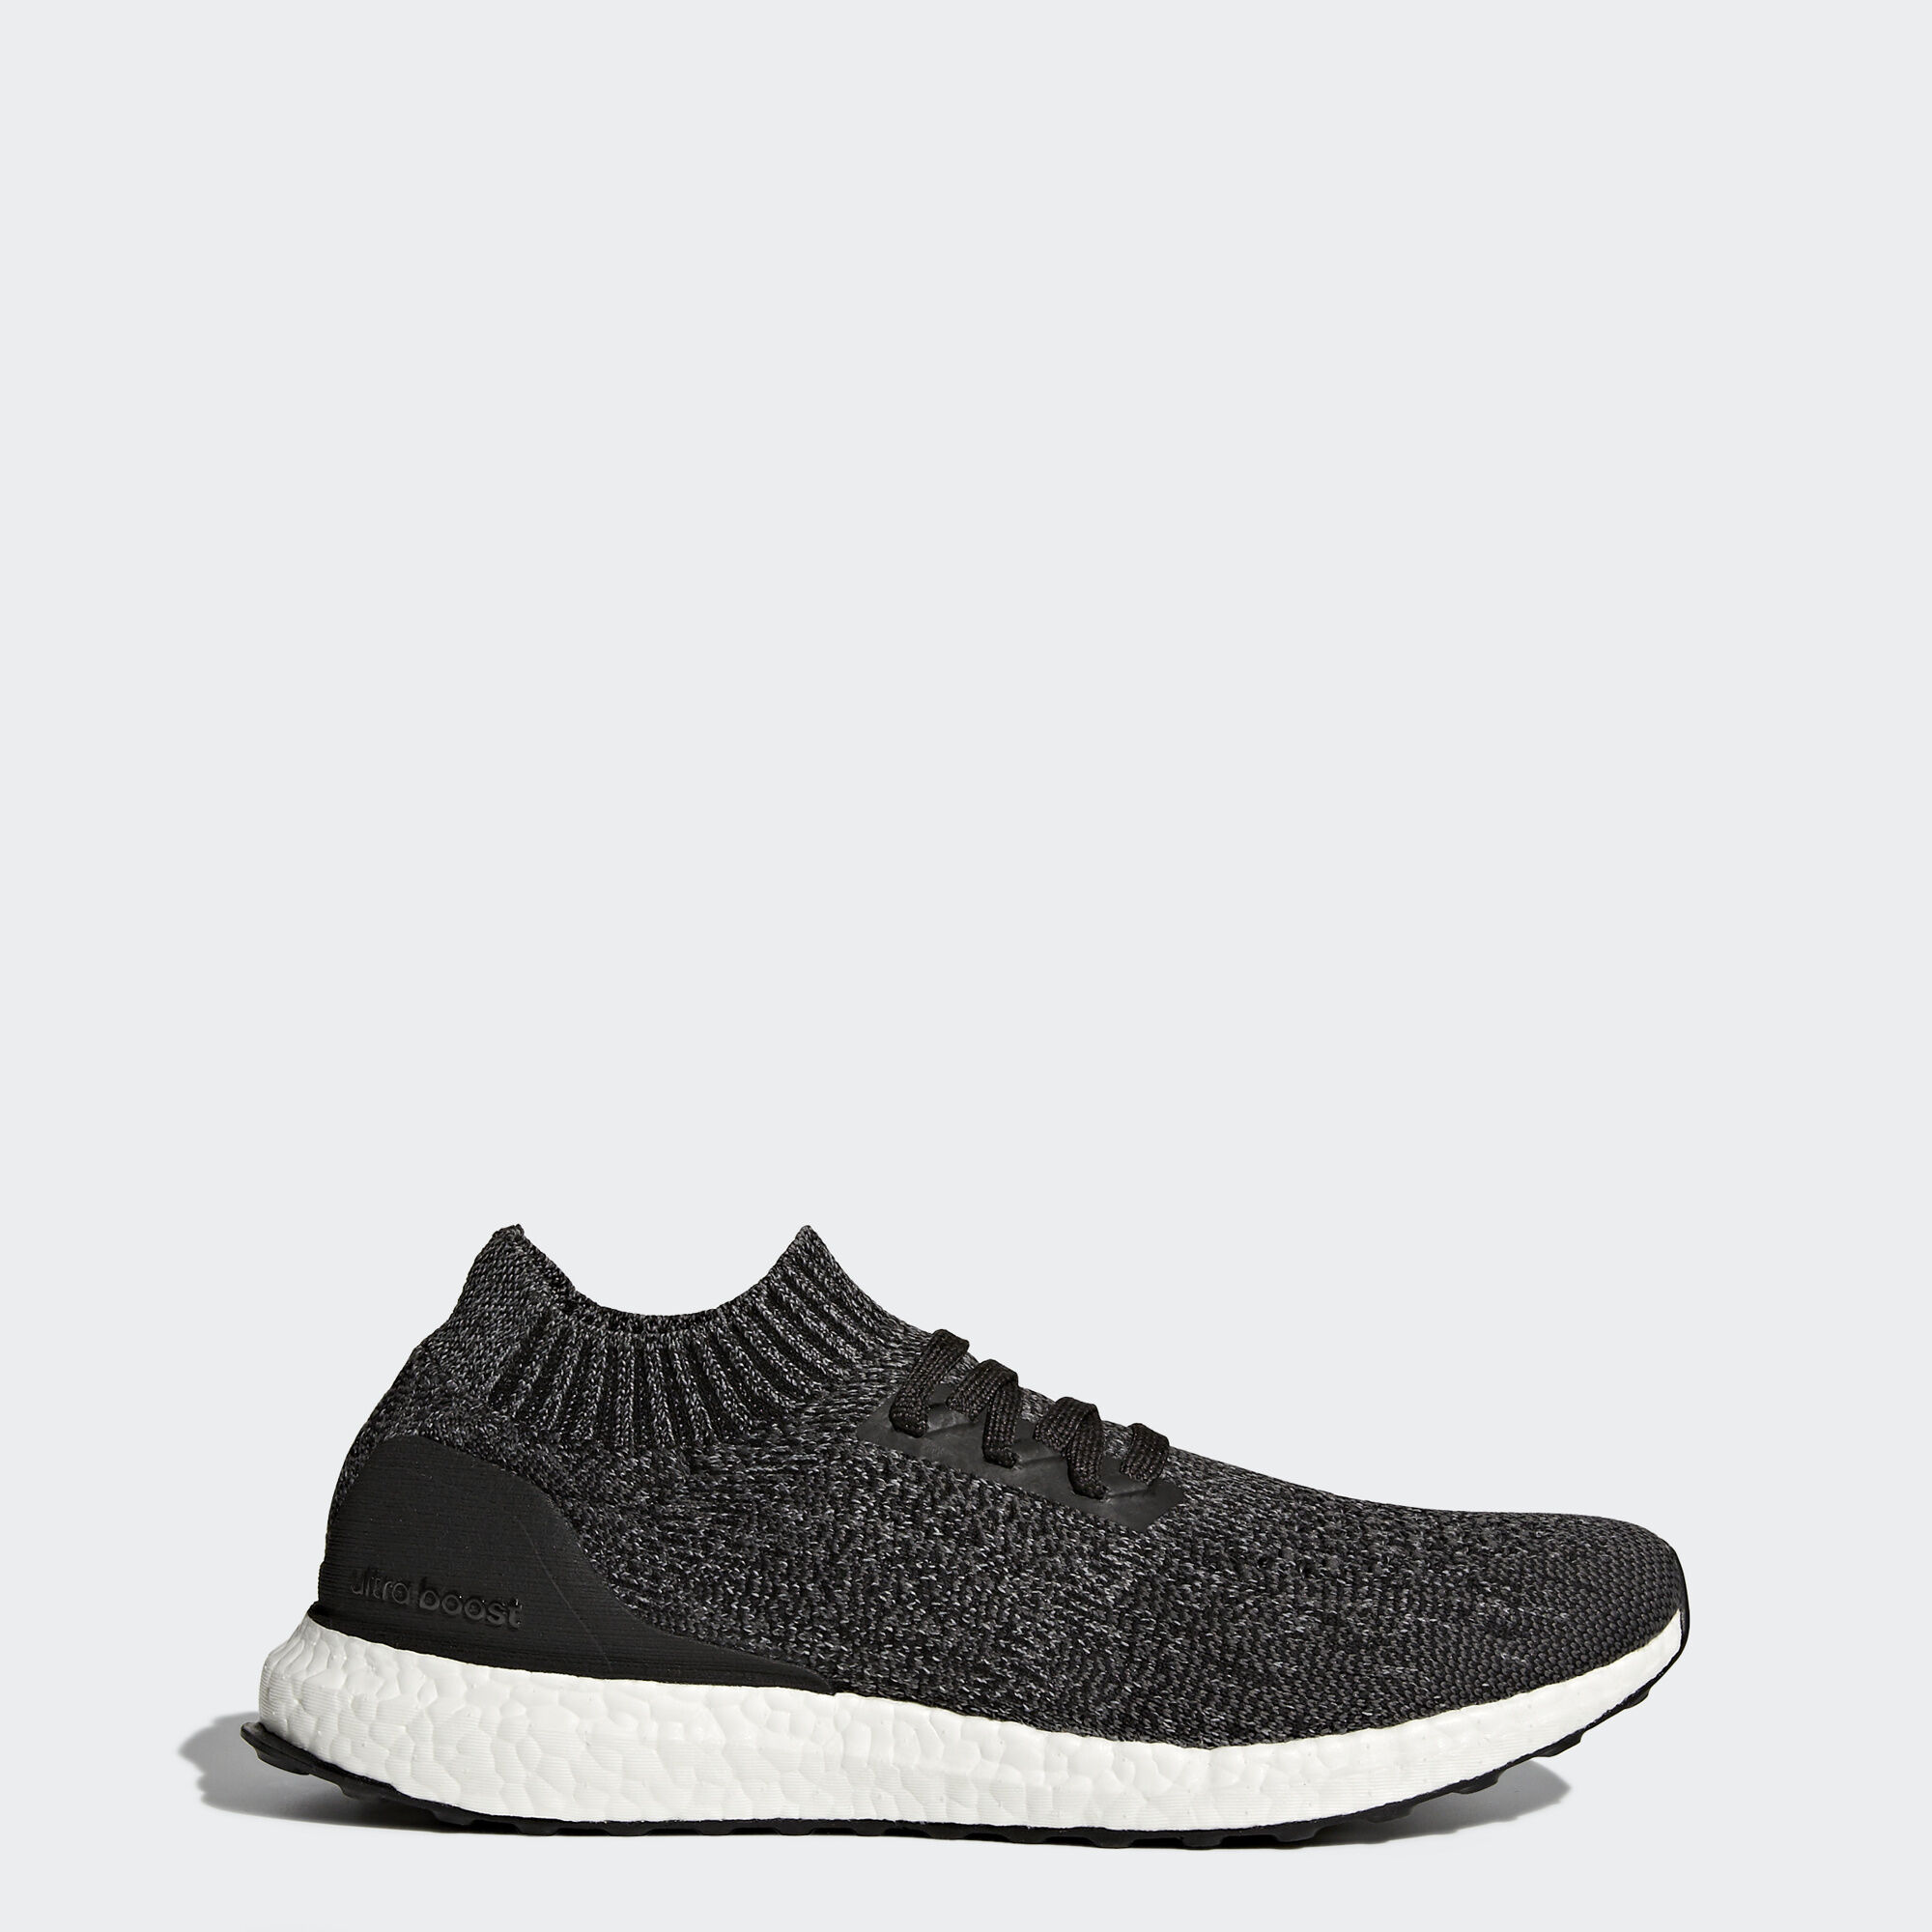 3472ac87 ... adidas - UltraBOOST Uncaged Shoes Core Black / Solid Grey BY2551